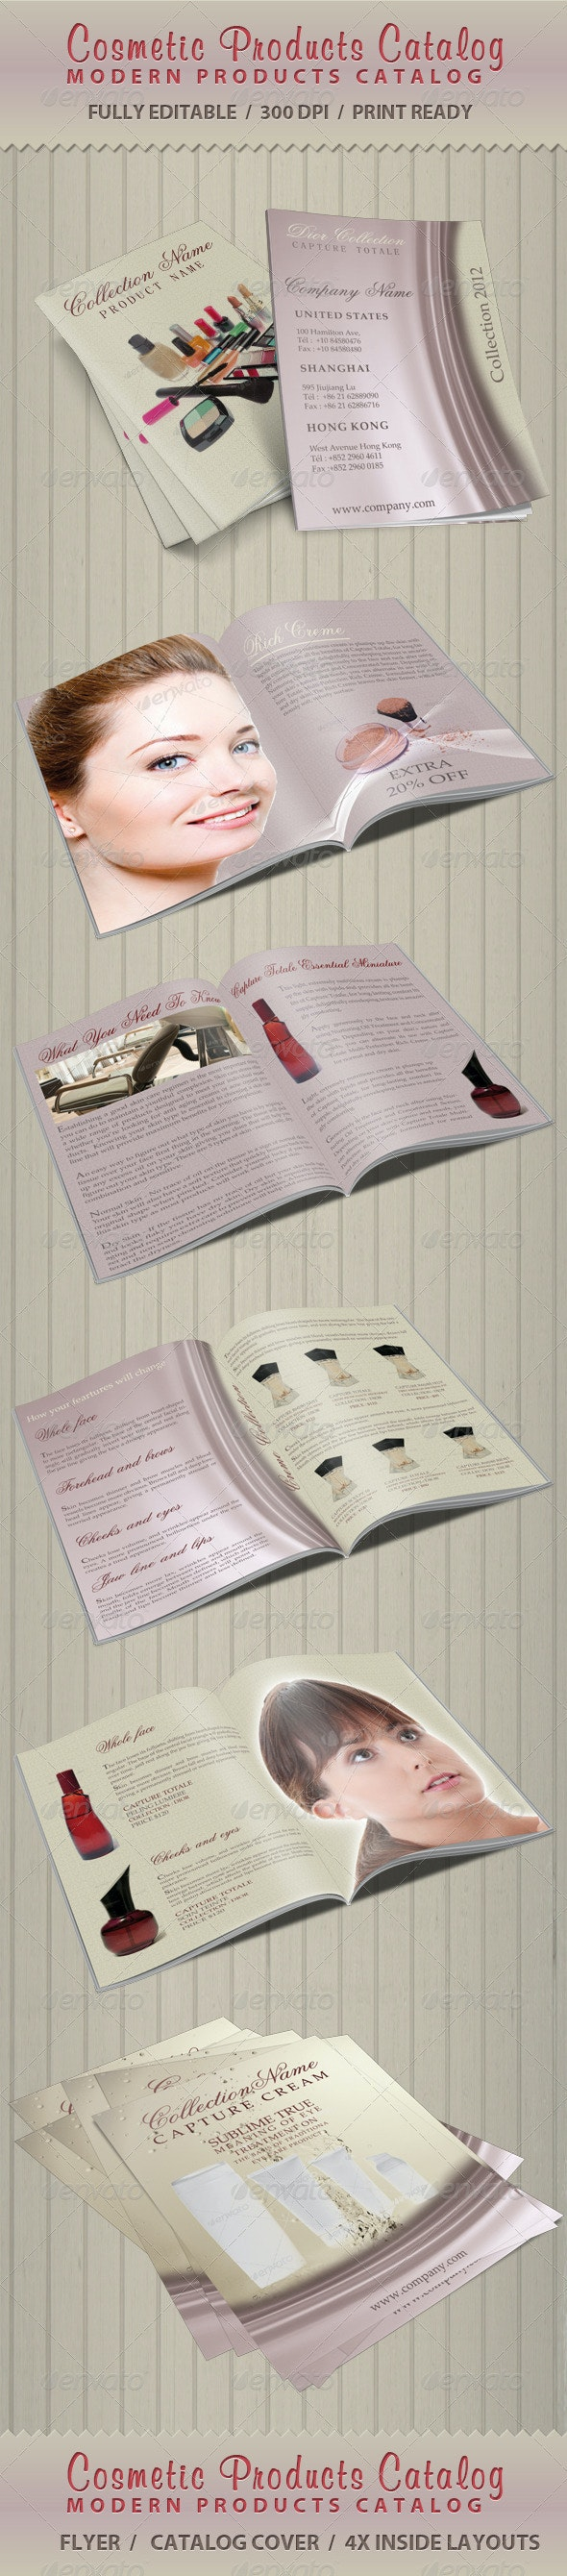 Cosmetic Products Catalog - Catalogs Brochures